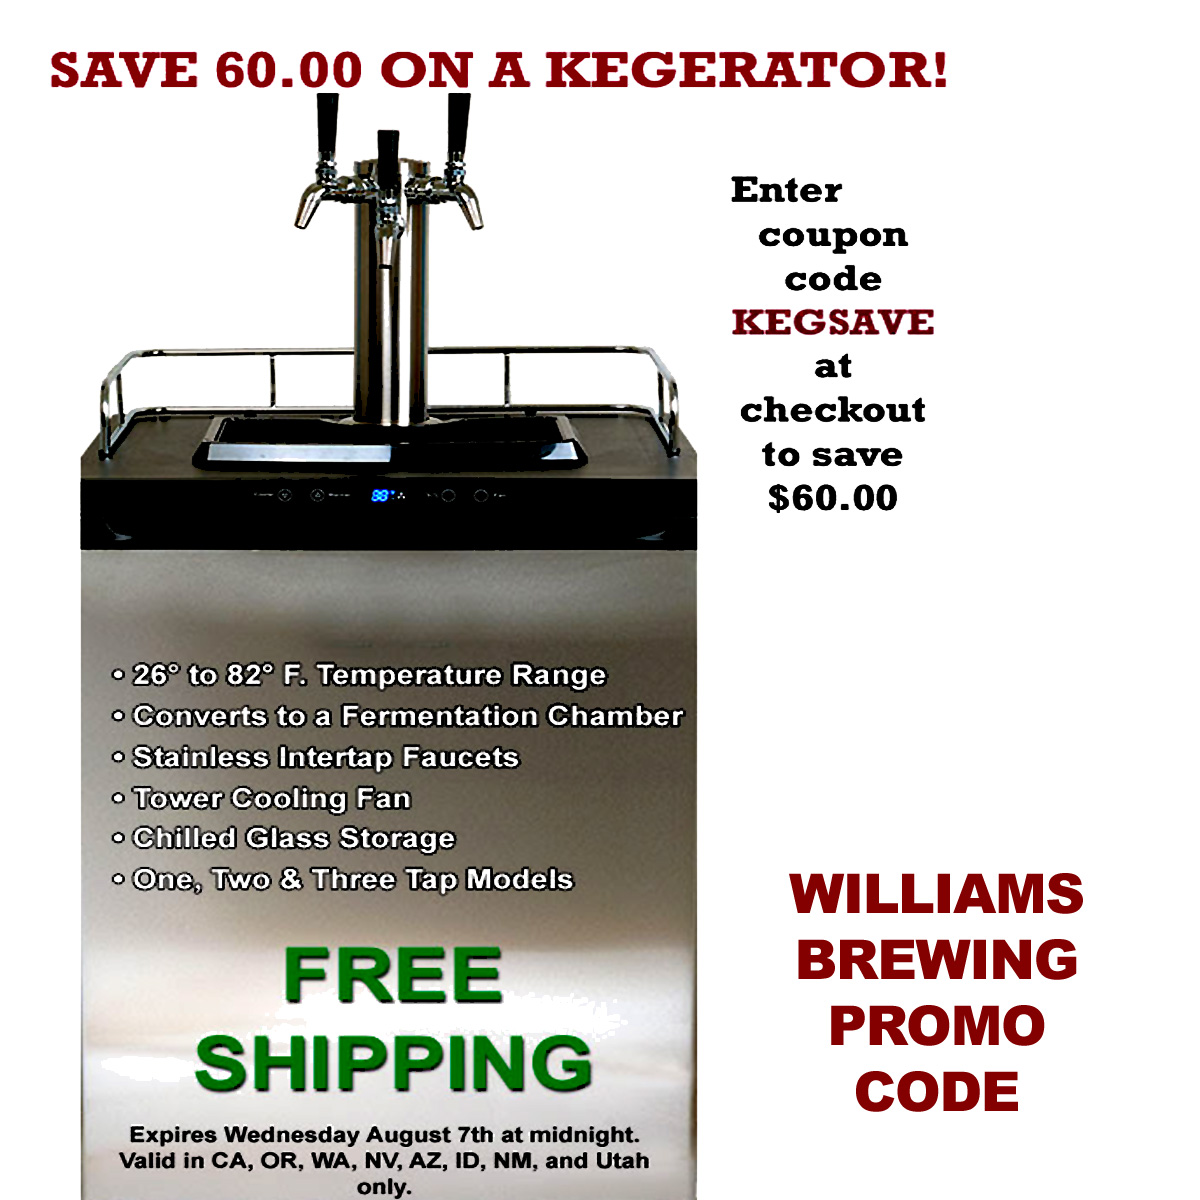 Williams Brewing Promo Code for $60 Off a Kegerator and FREE SHIPPING